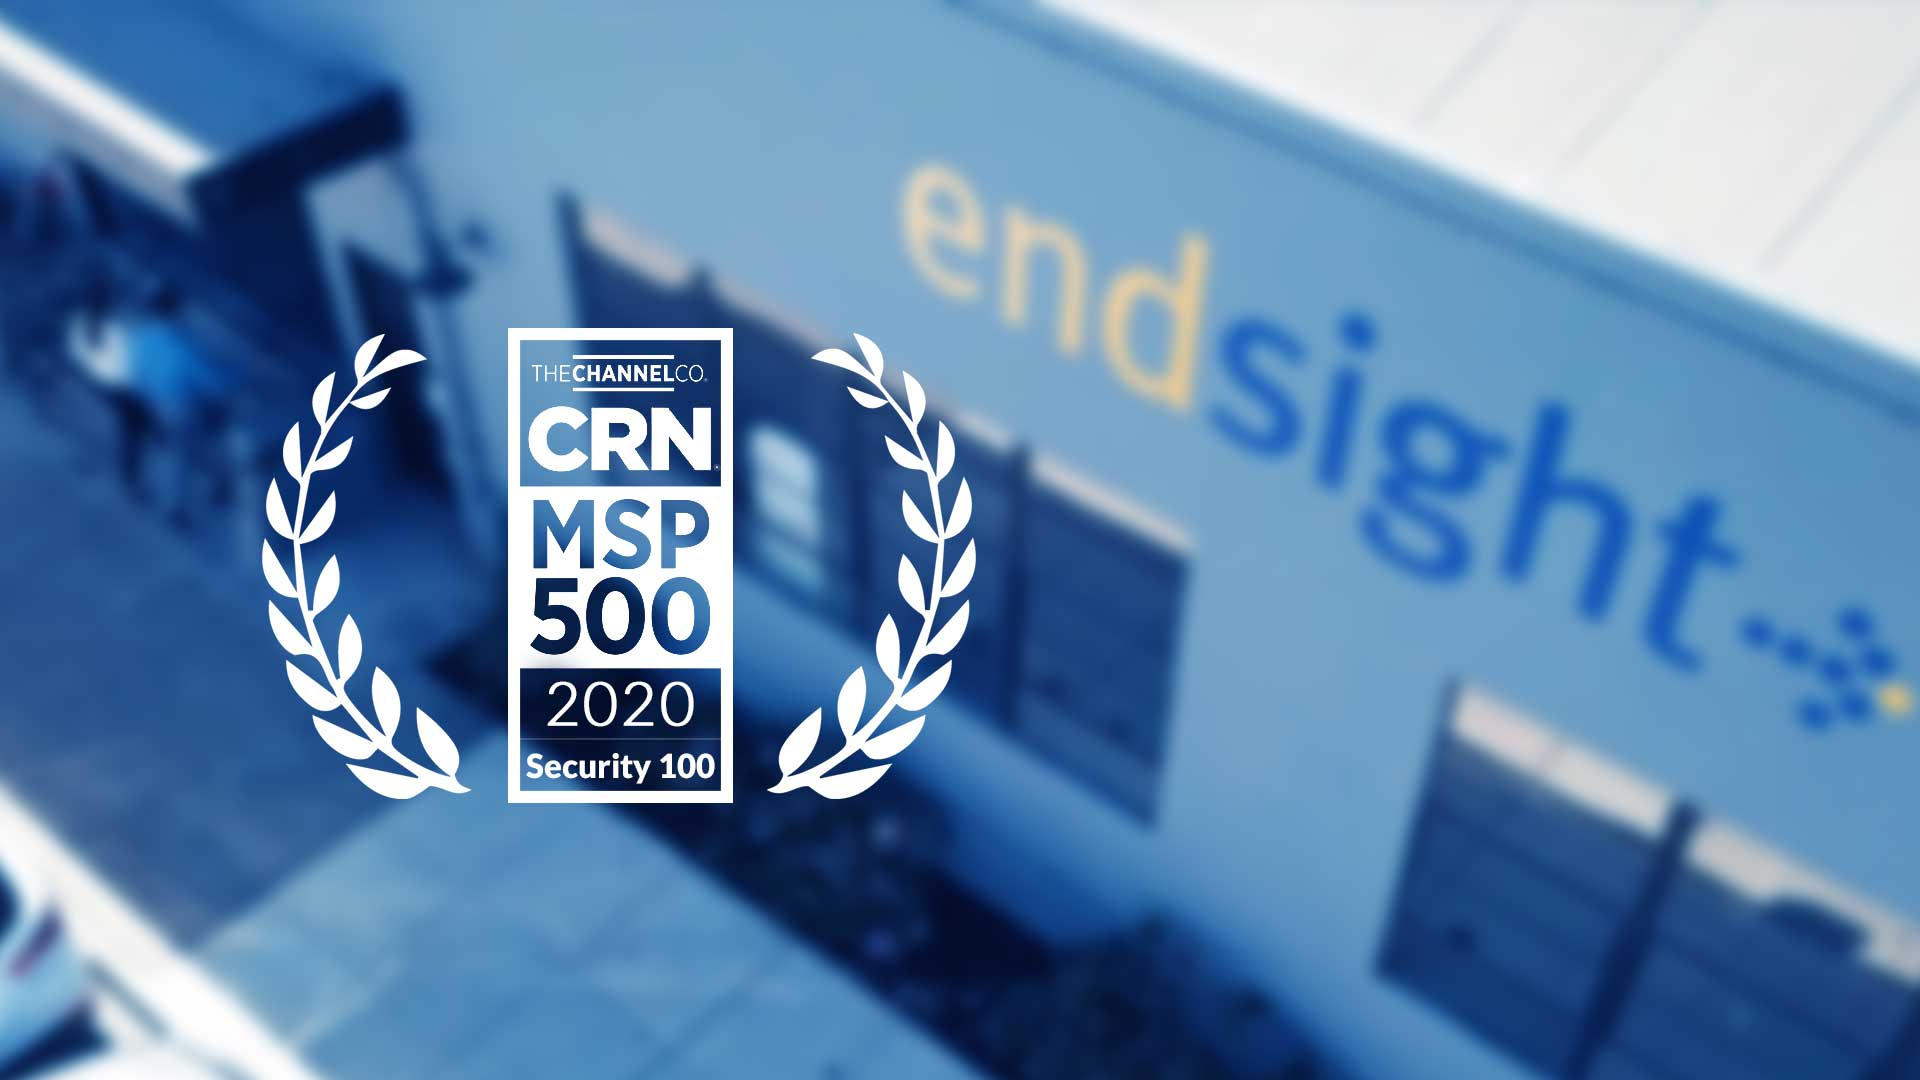 CRN Recognizes Endsight as a Top Security Provider in 2020